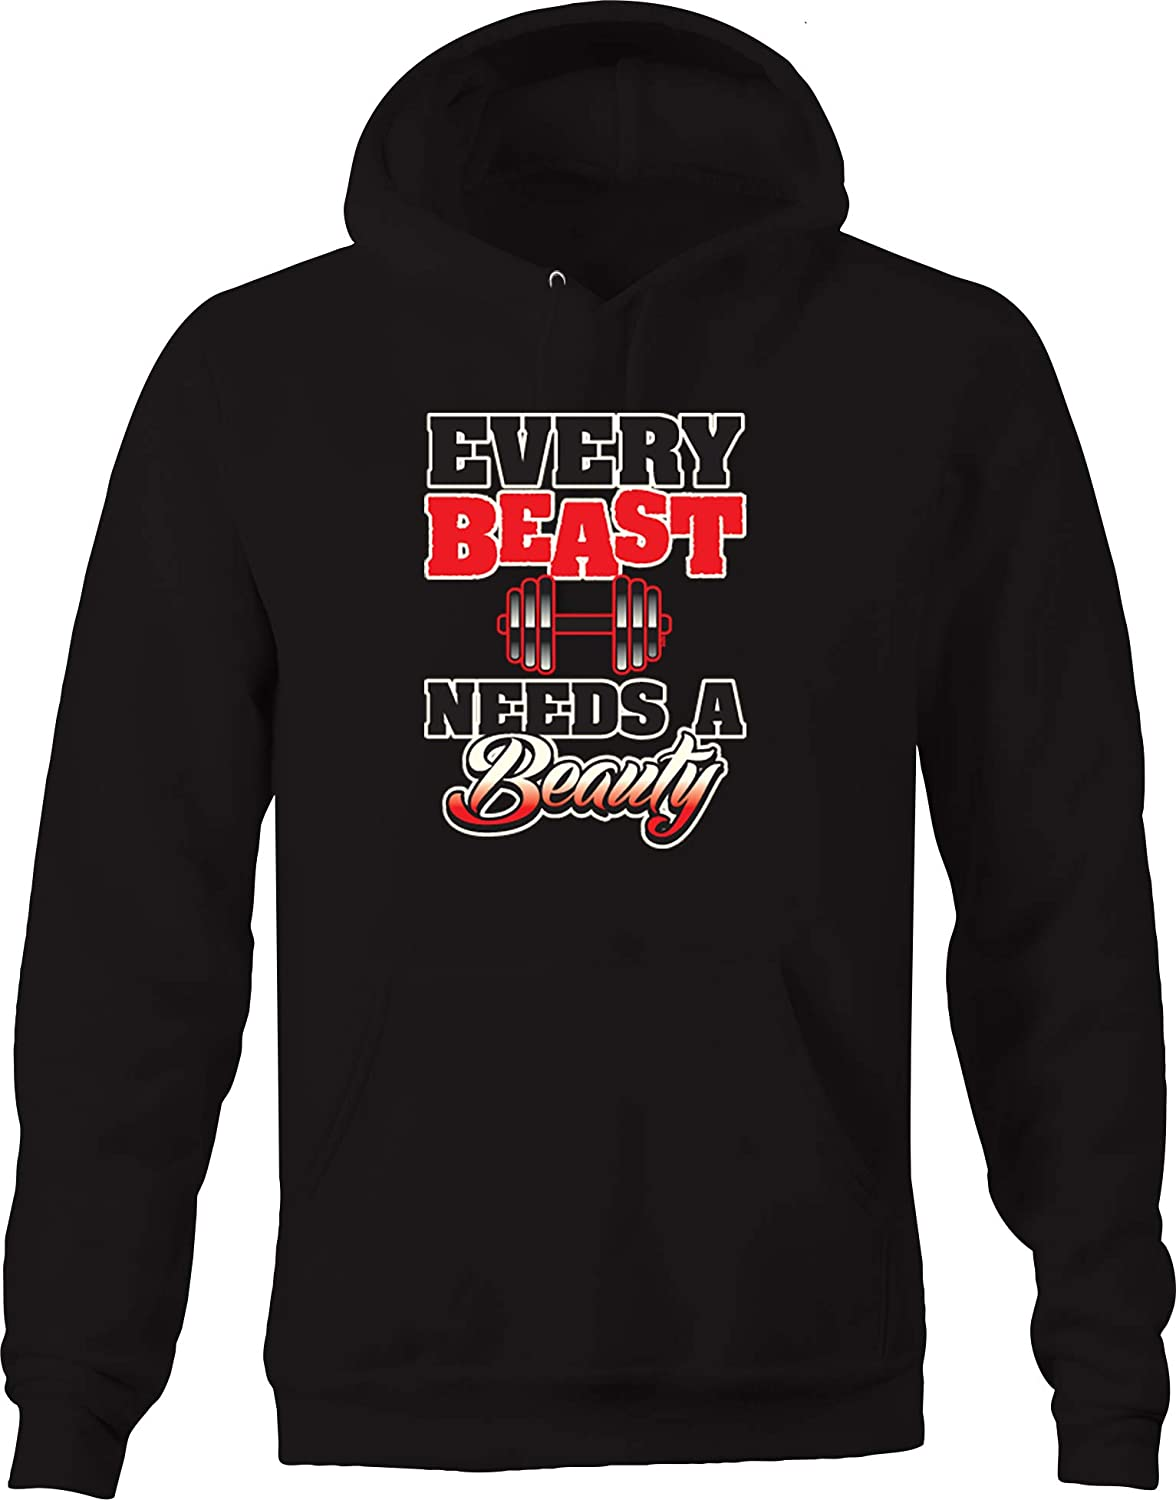 Every Beast Needs a Beauty Weightlifting Training Dumbbell Lift Hoodies for Men